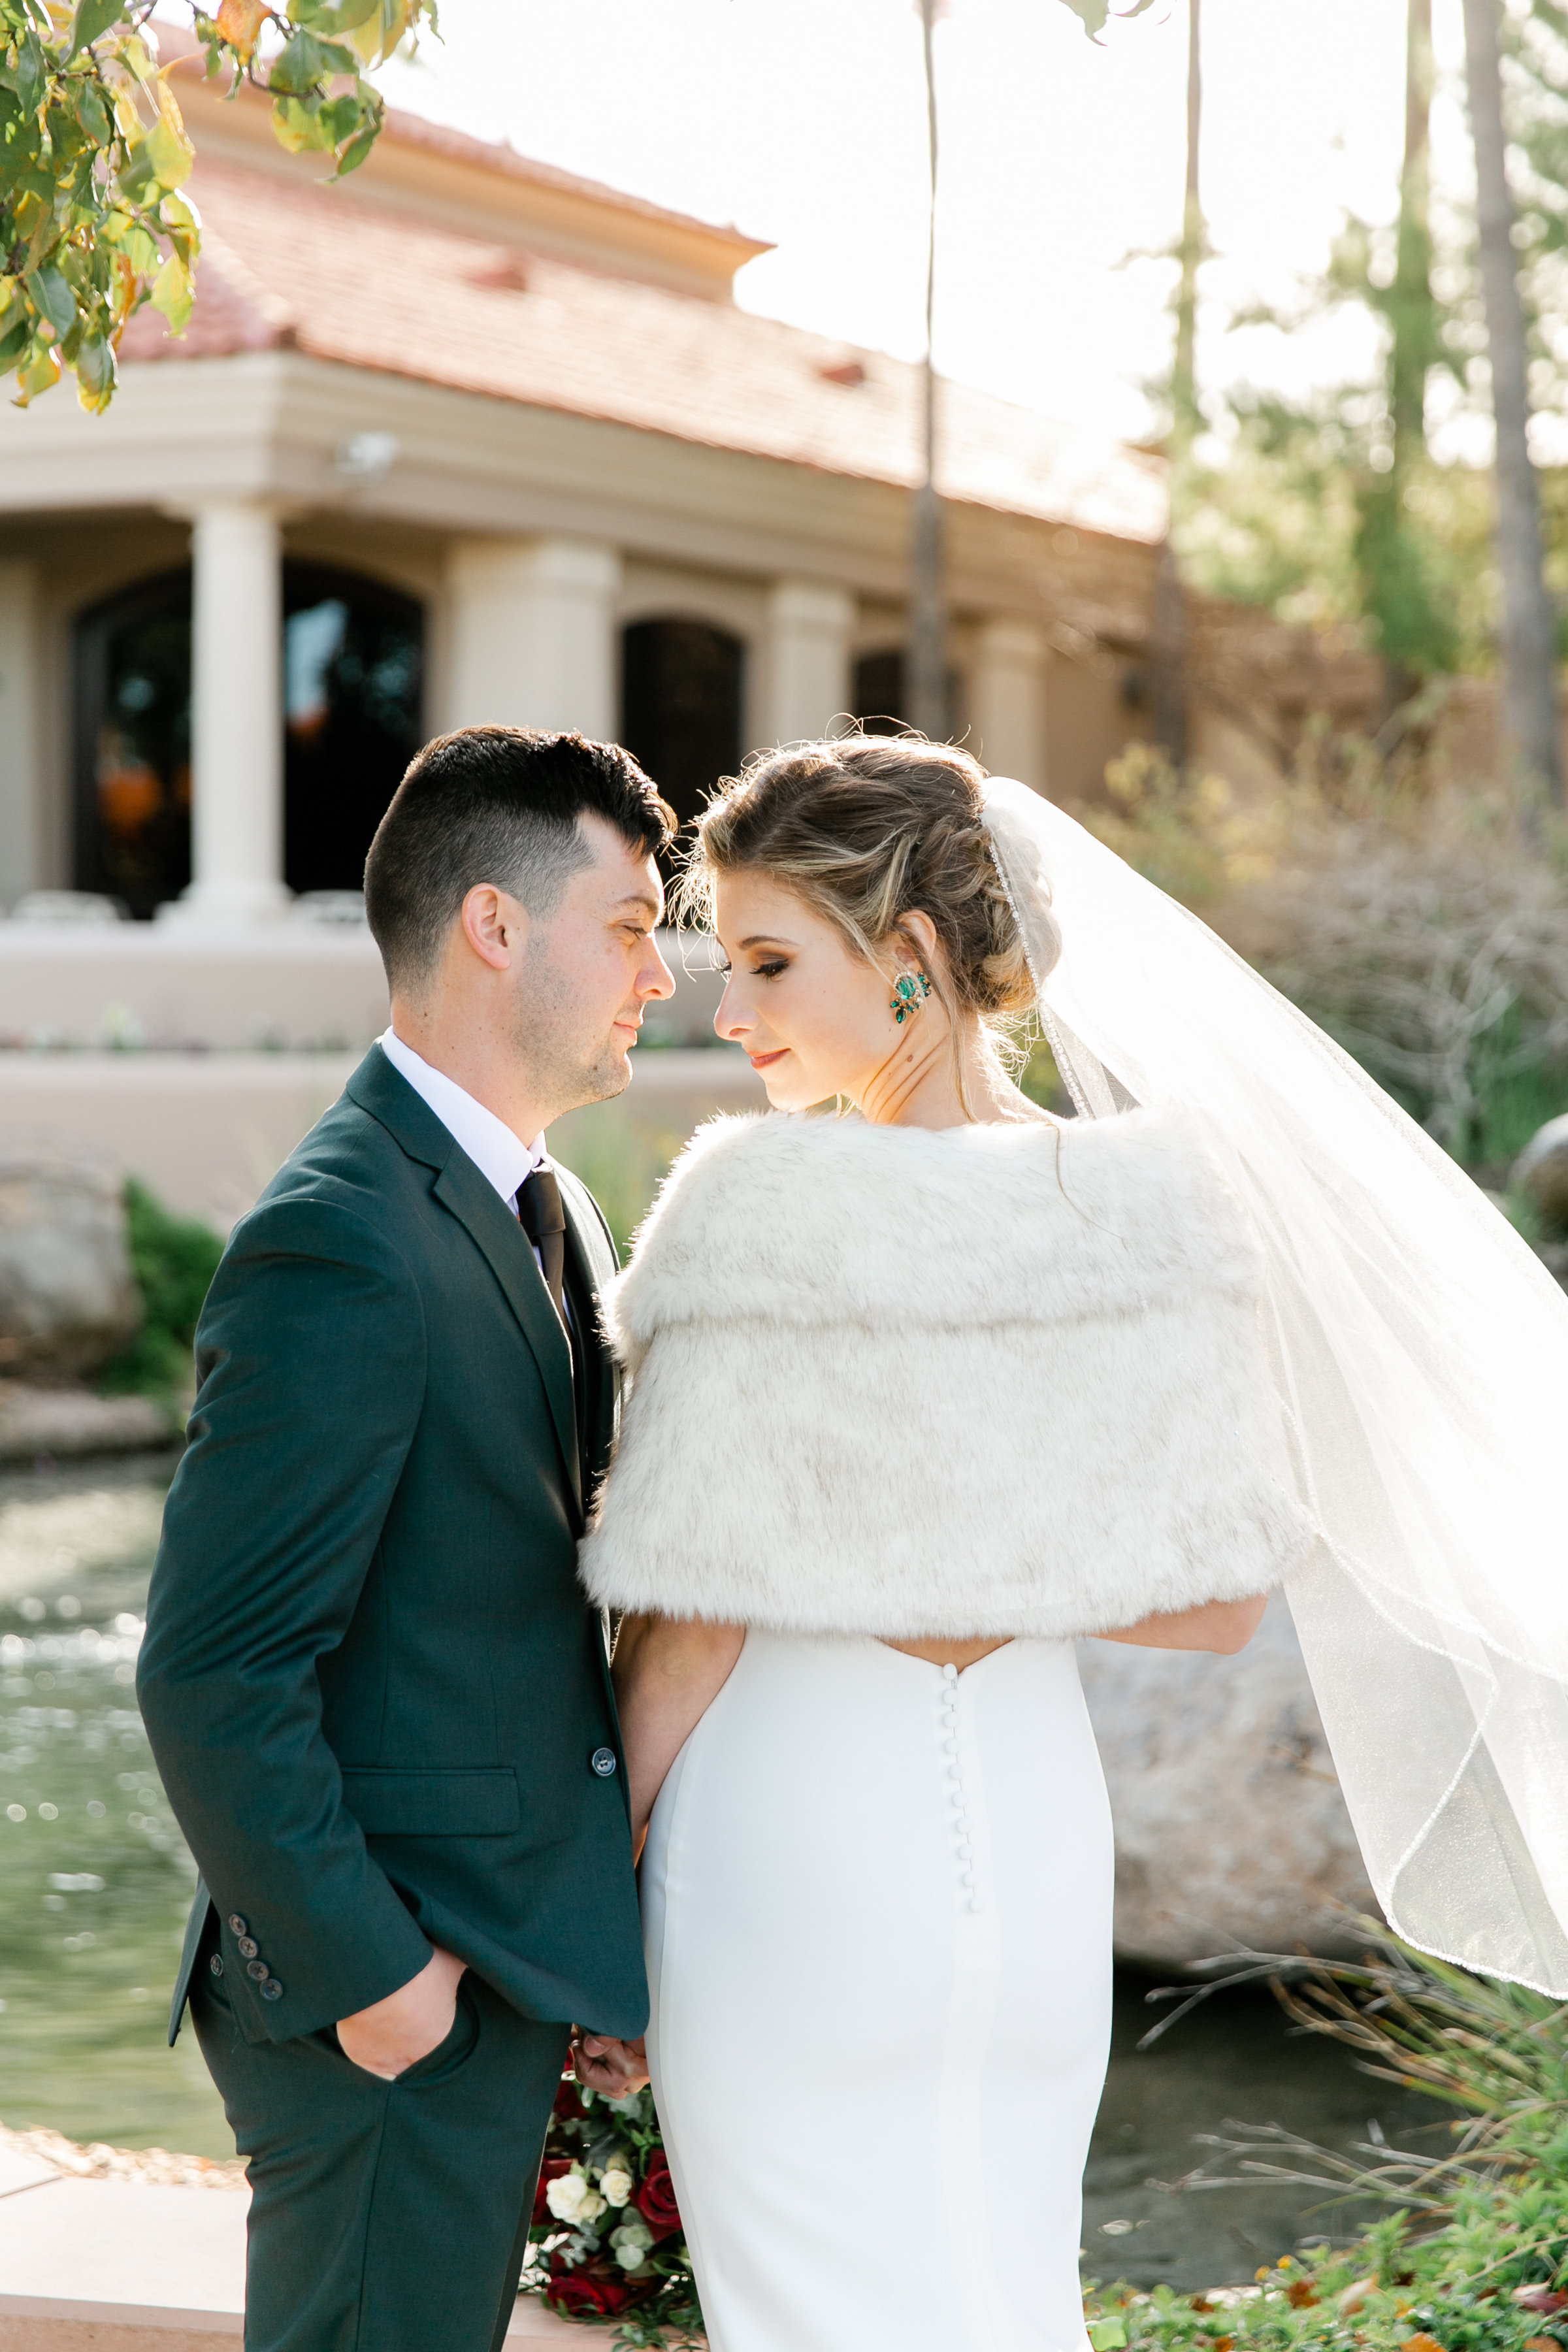 Karlie Colleen Photography - Gilbert Wedding - Val Vista Lakes - Brynne & Josh-34